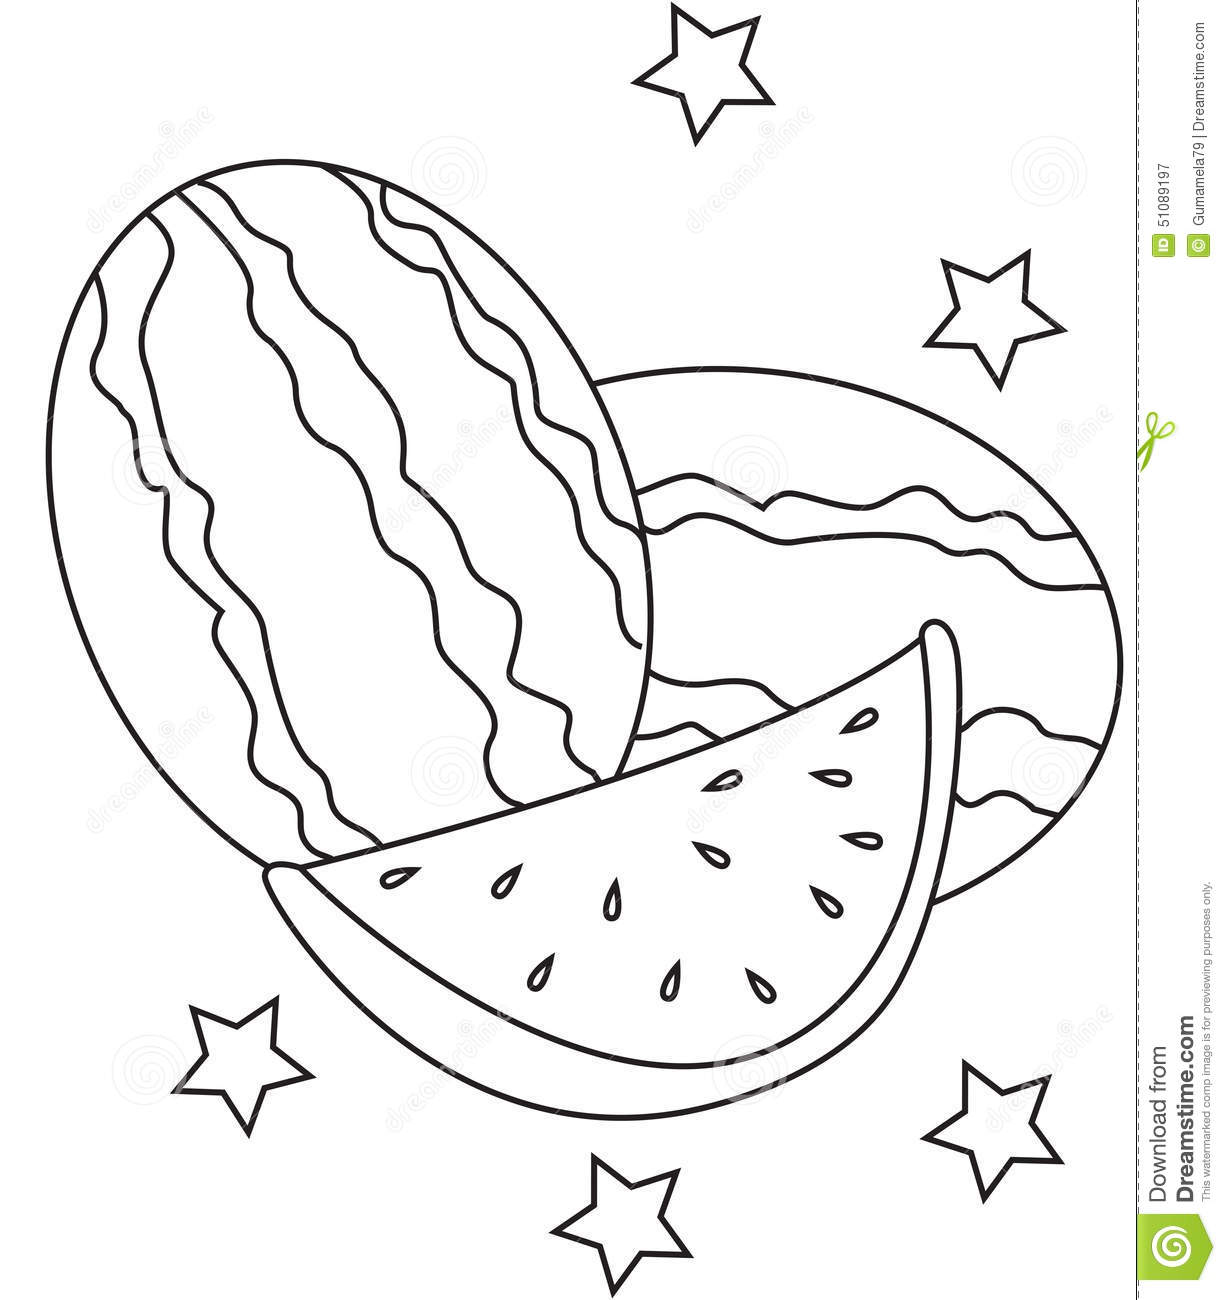 Watermelon Coloring Page Stock Illustration Illustration